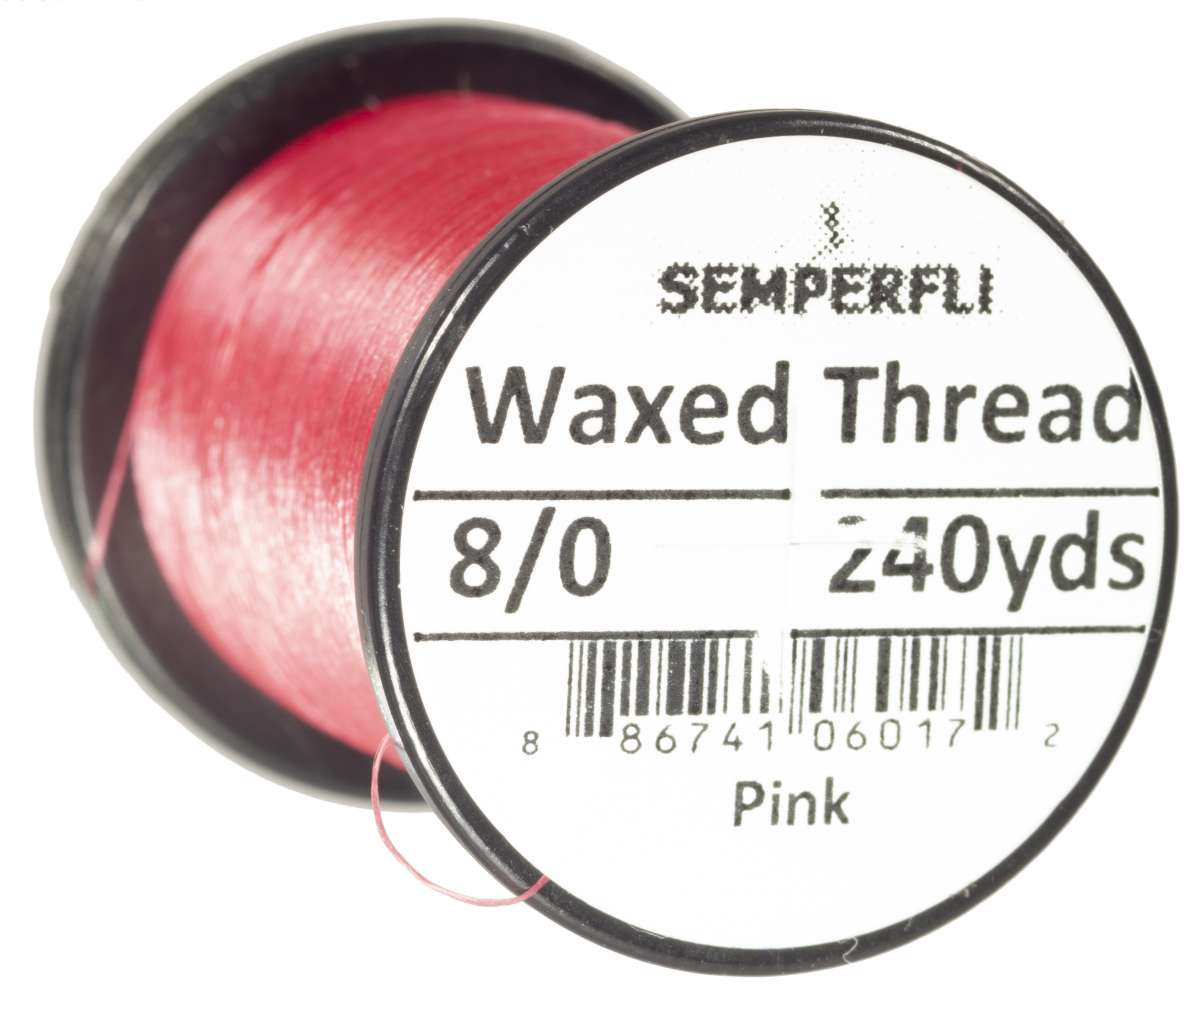 8/0 Classic Waxed Thread Pink Sem-0400-1110